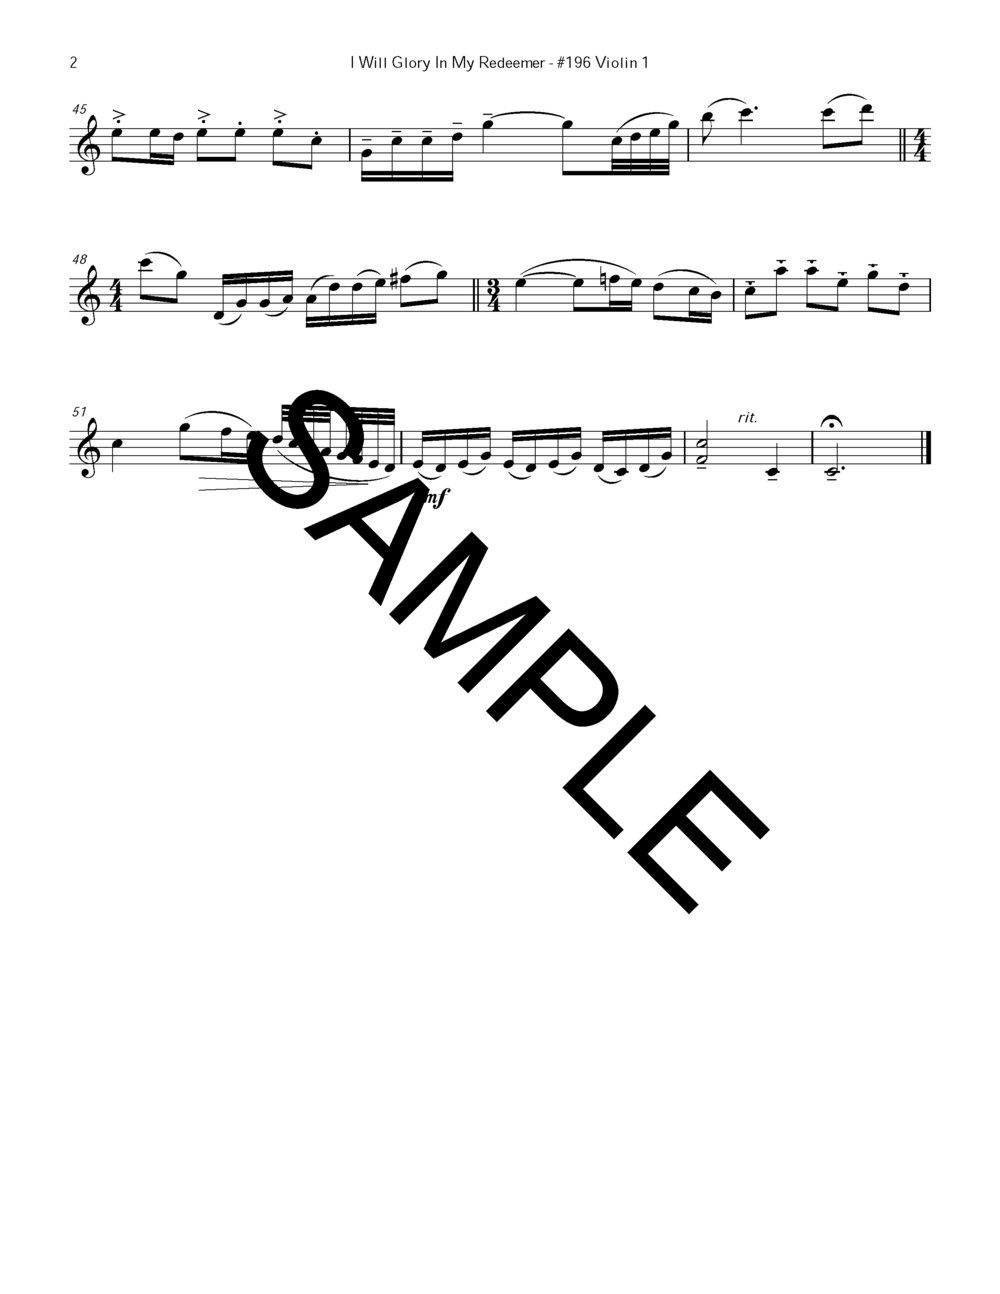 Sample I Will Glory in My Redeemer #196 Strngs Ob Piano Chrd Chrt Orgn M Rice arr_Page_30.jpg